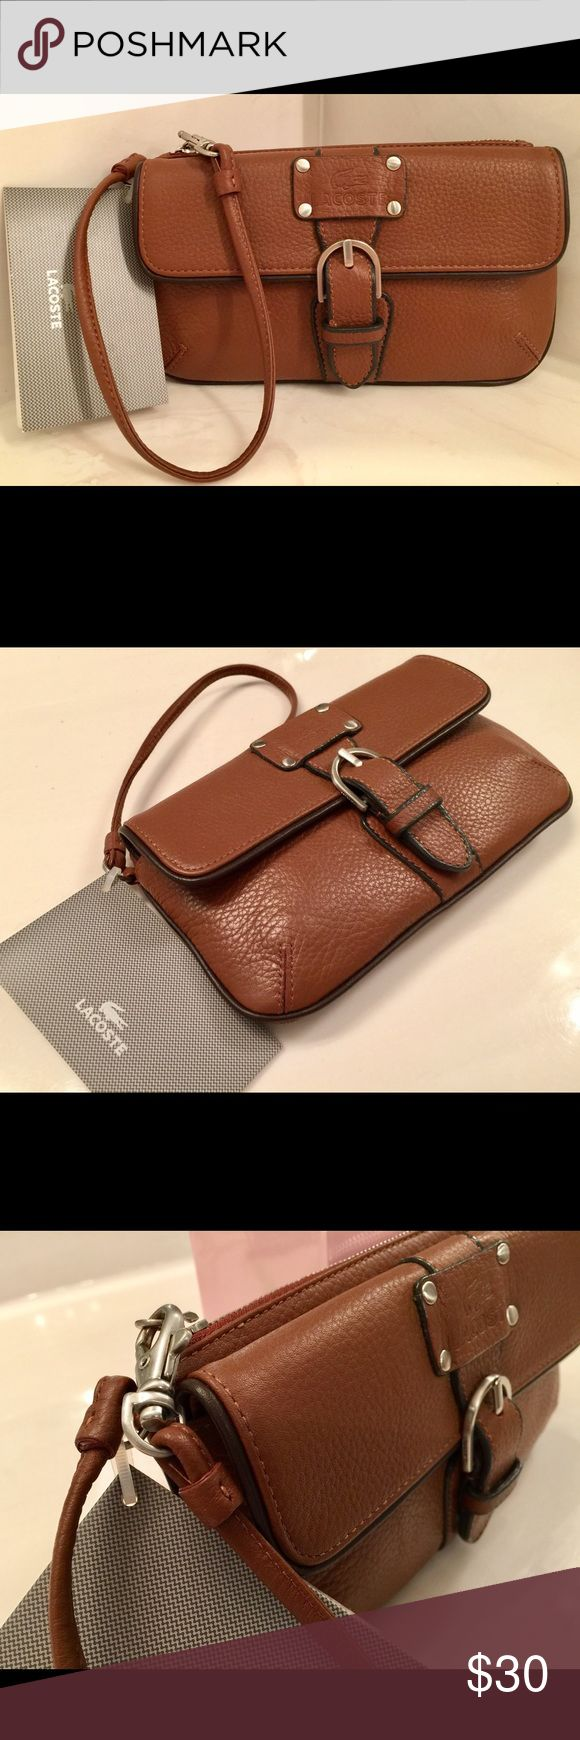 NWT Lacoste wristlet; pouch; ladies purse; handbag Lacoste women's wristlet; handheld bag; pouch; ladies purse. Exterior: soft brown leather with chocolate brown trim. Interior: fully lined in striped fabric for durability and cleanliness. Has 2 compartments (1 zippered and 1 snapped closure). Hardware: silver. Will fit iPhone plus. AUTHENTIC and new with tag. Lacoste Bags Clutches & Wristlets